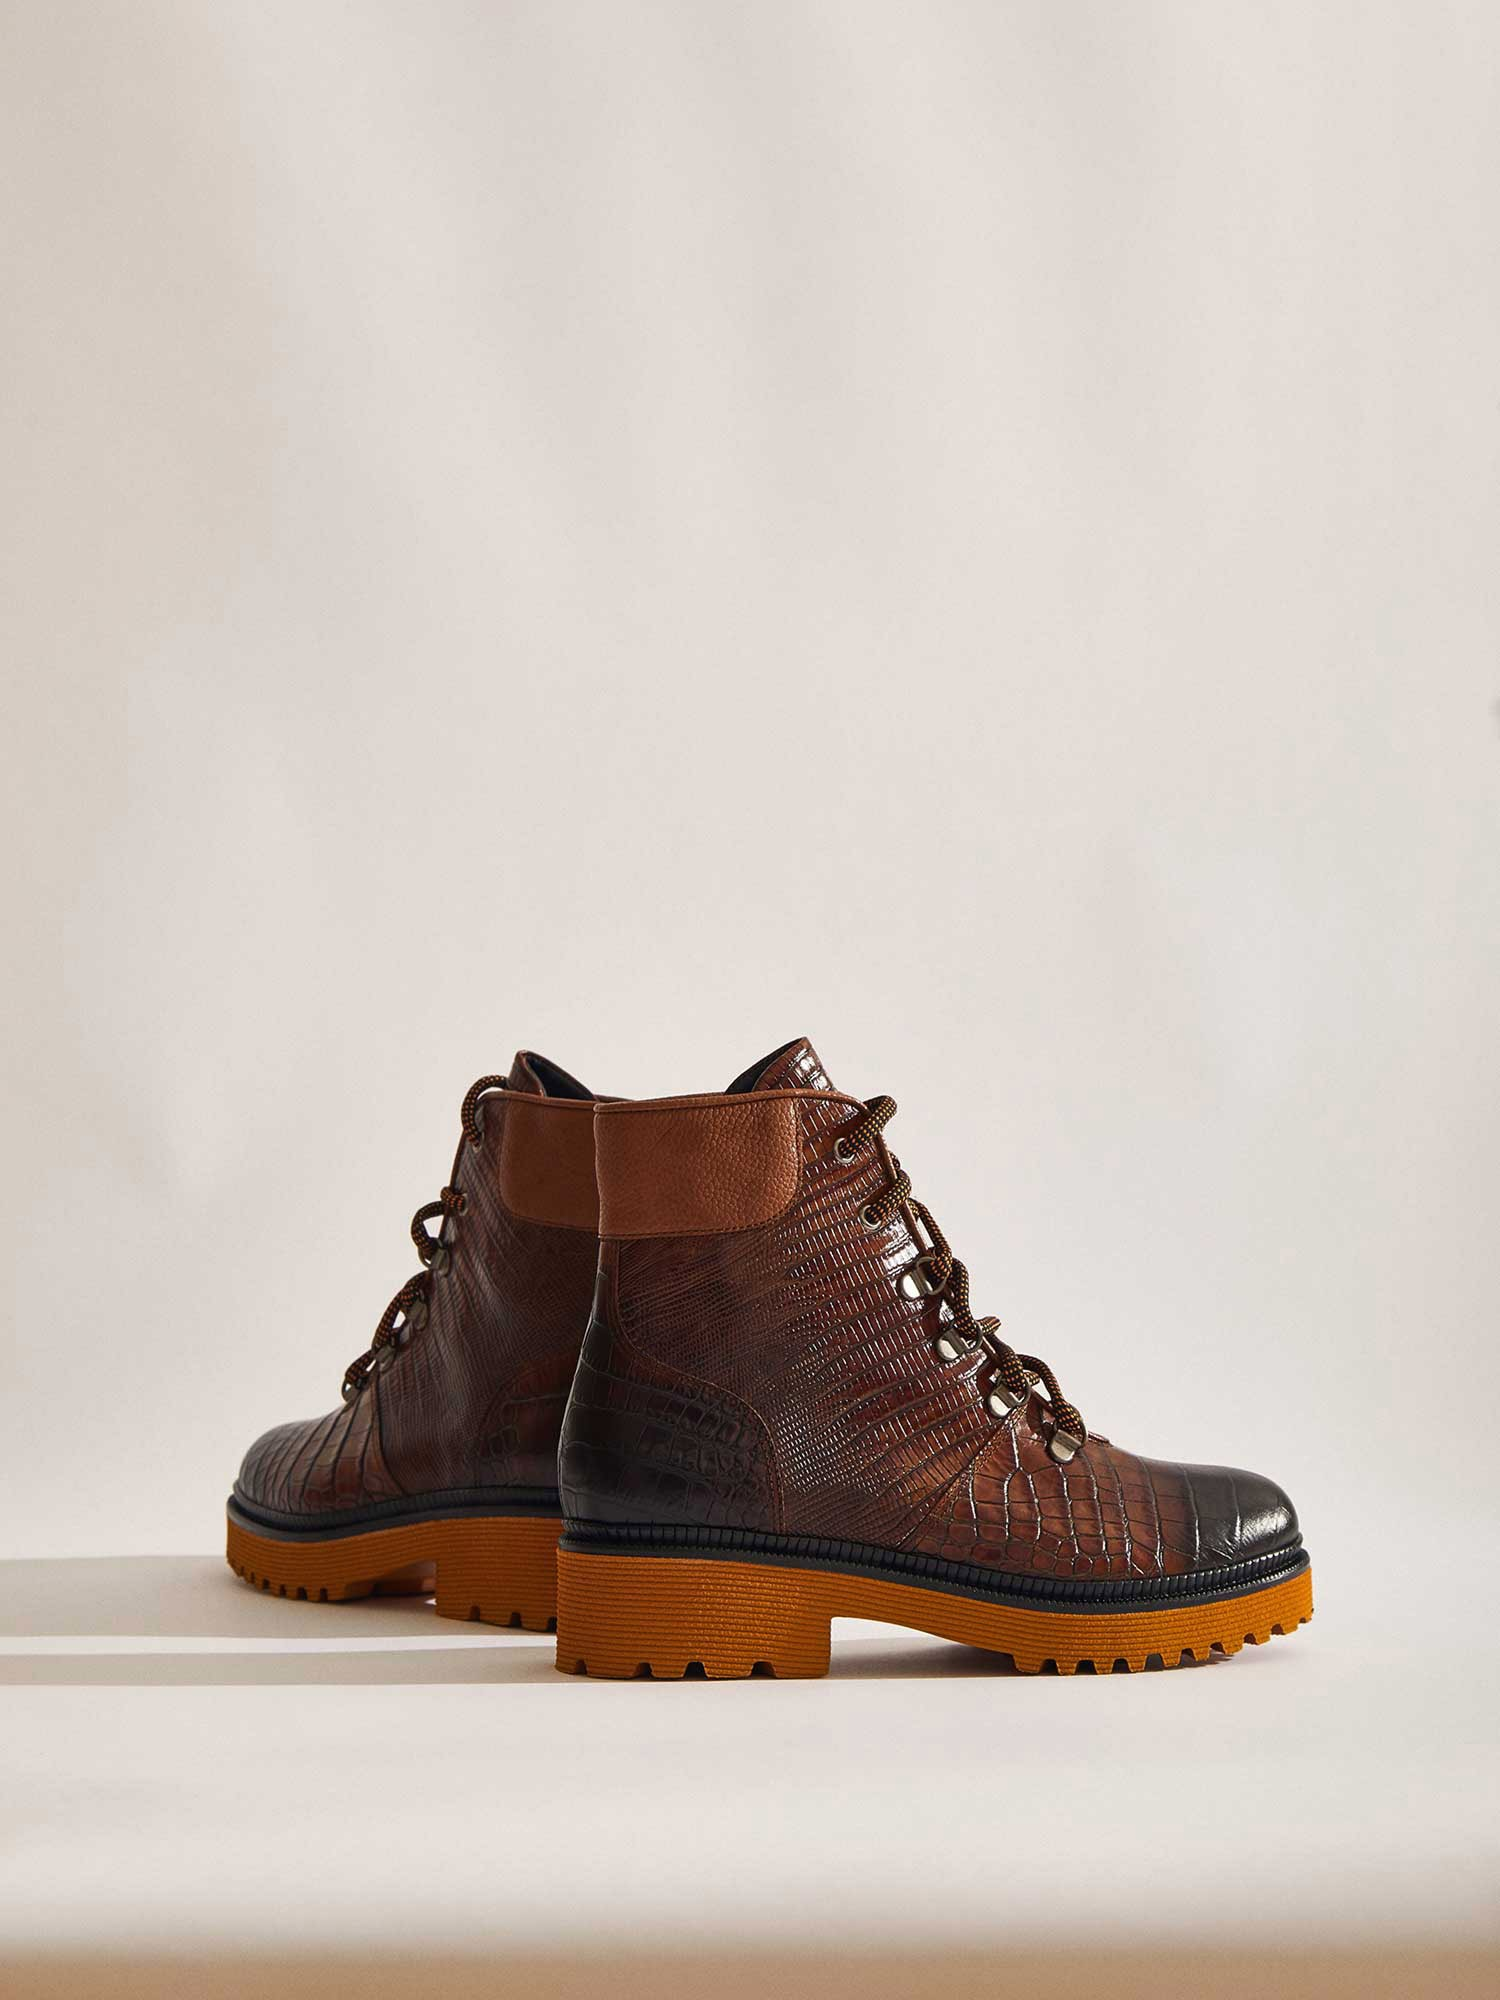 KEVIN COCCO + TEJUS TOFFE ANKLE BOOT